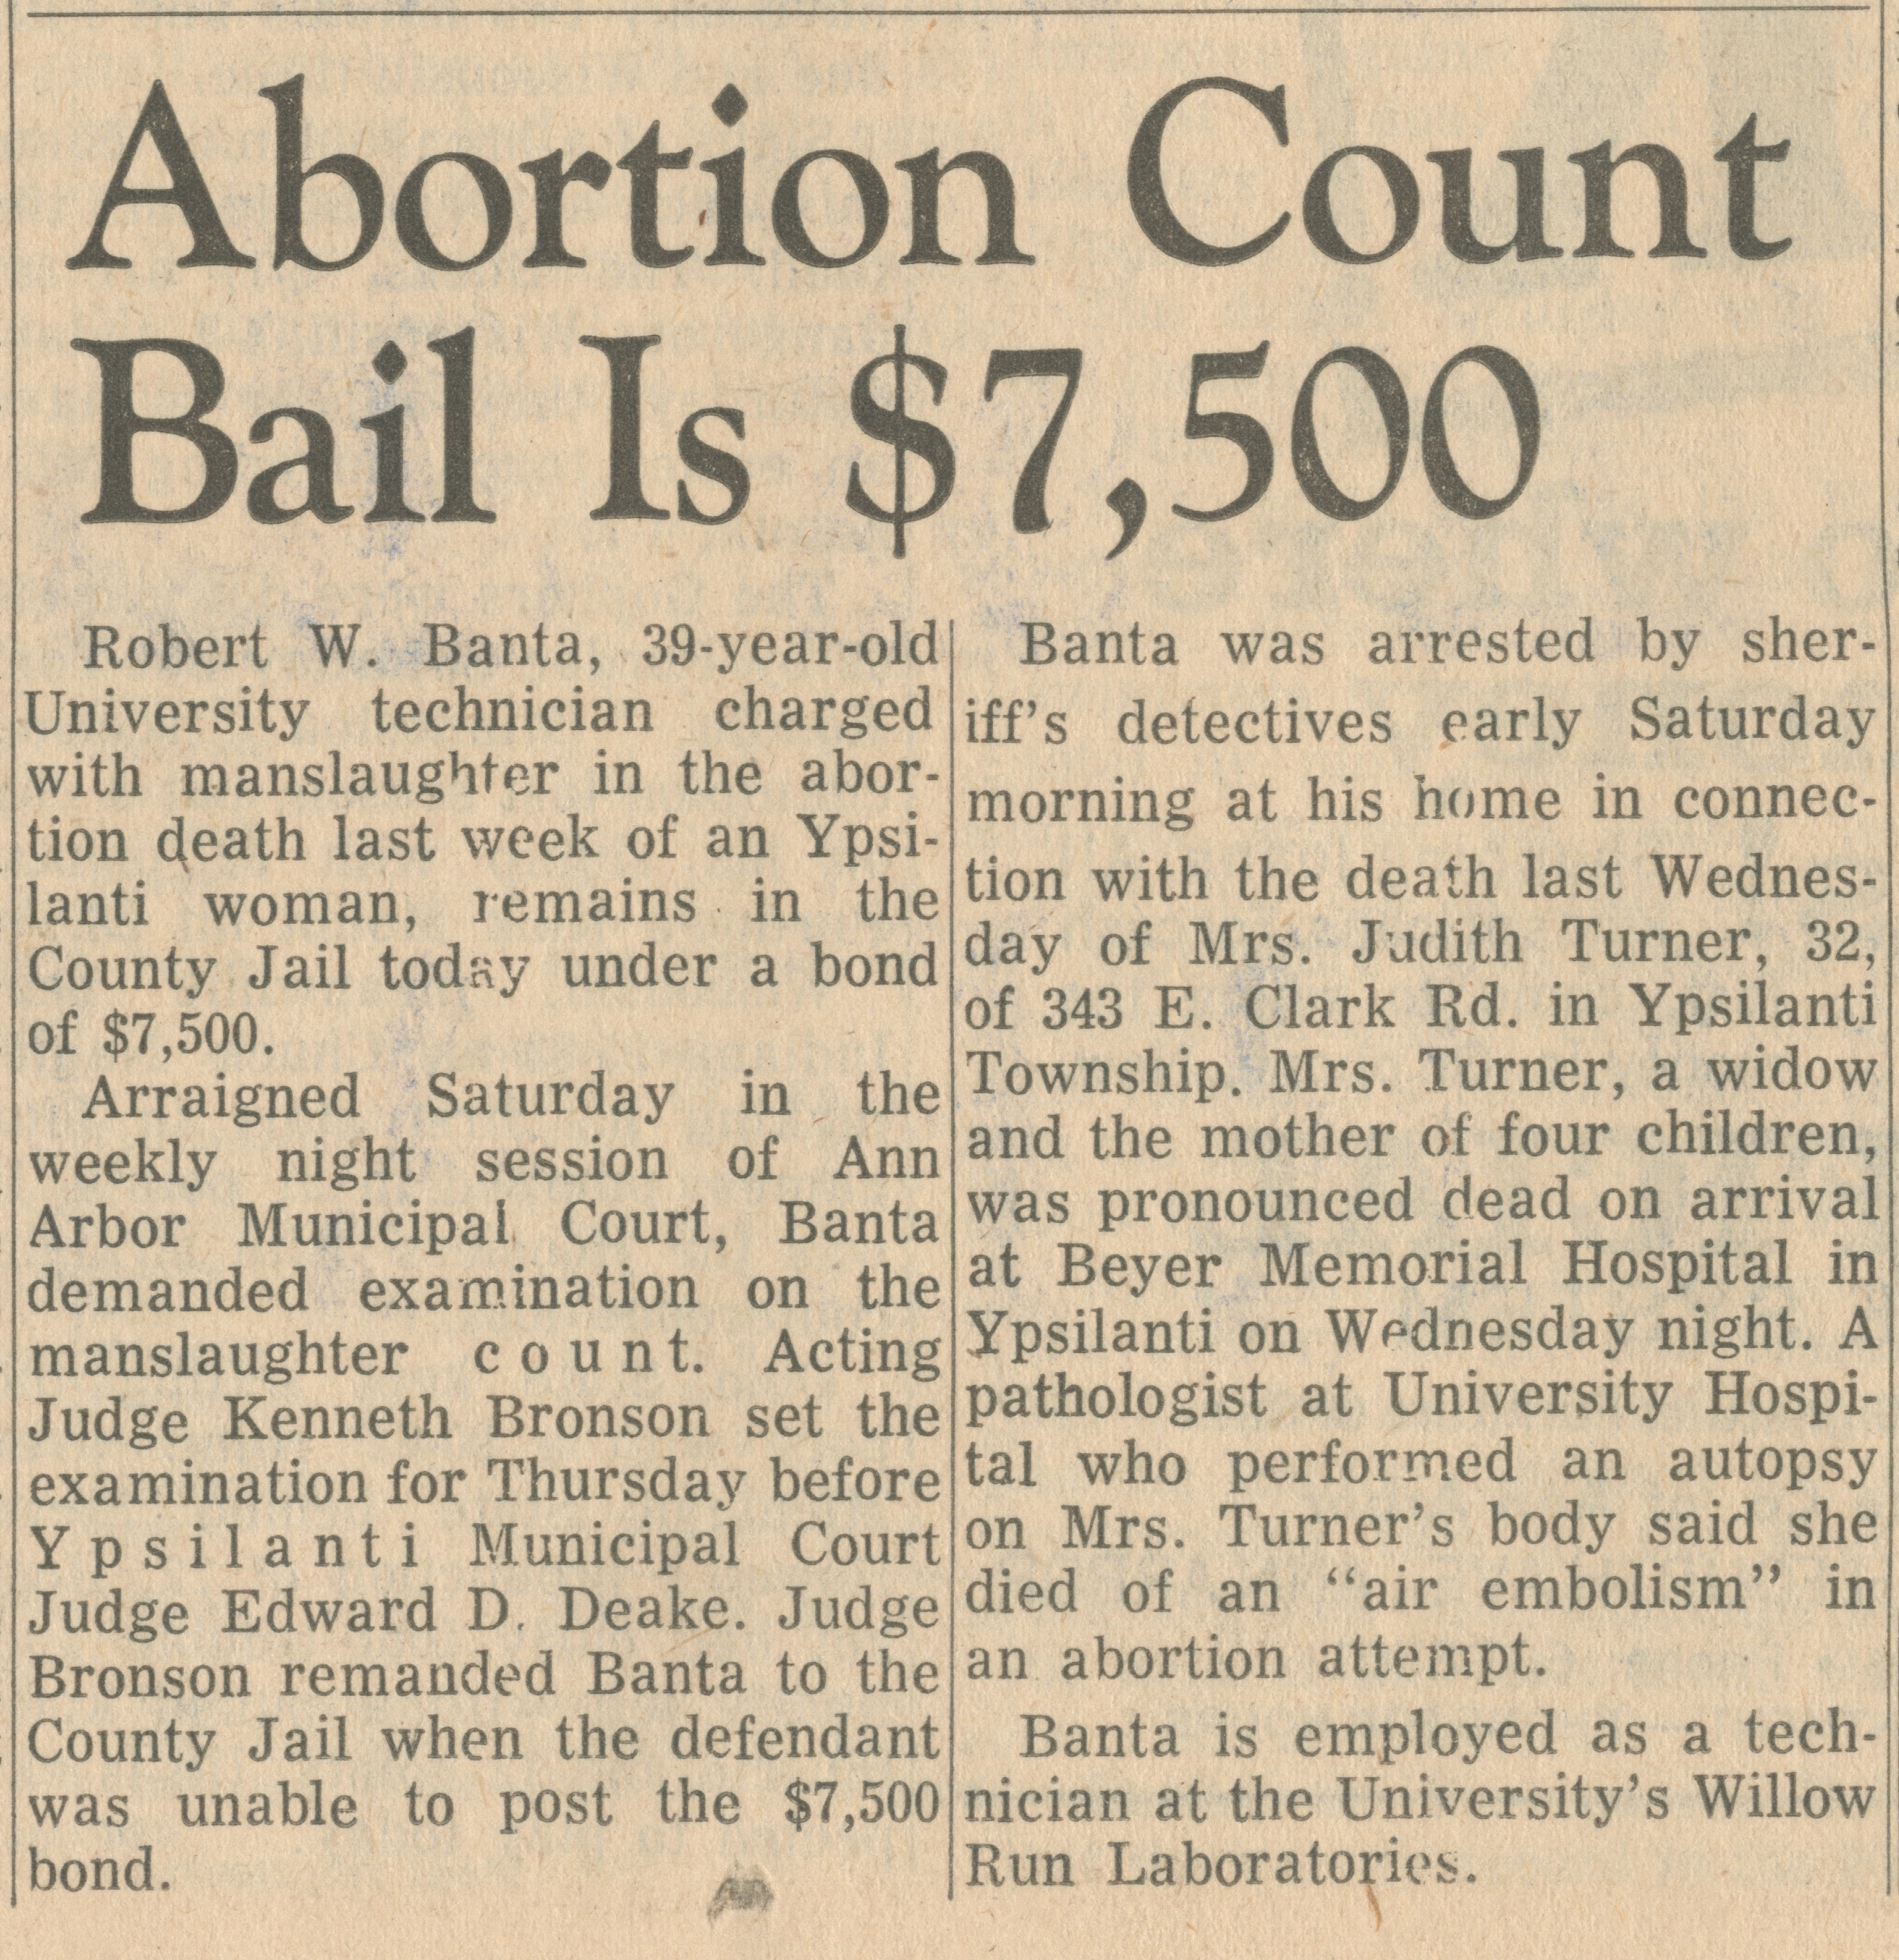 Abortion Count Bail Is $7,500 image